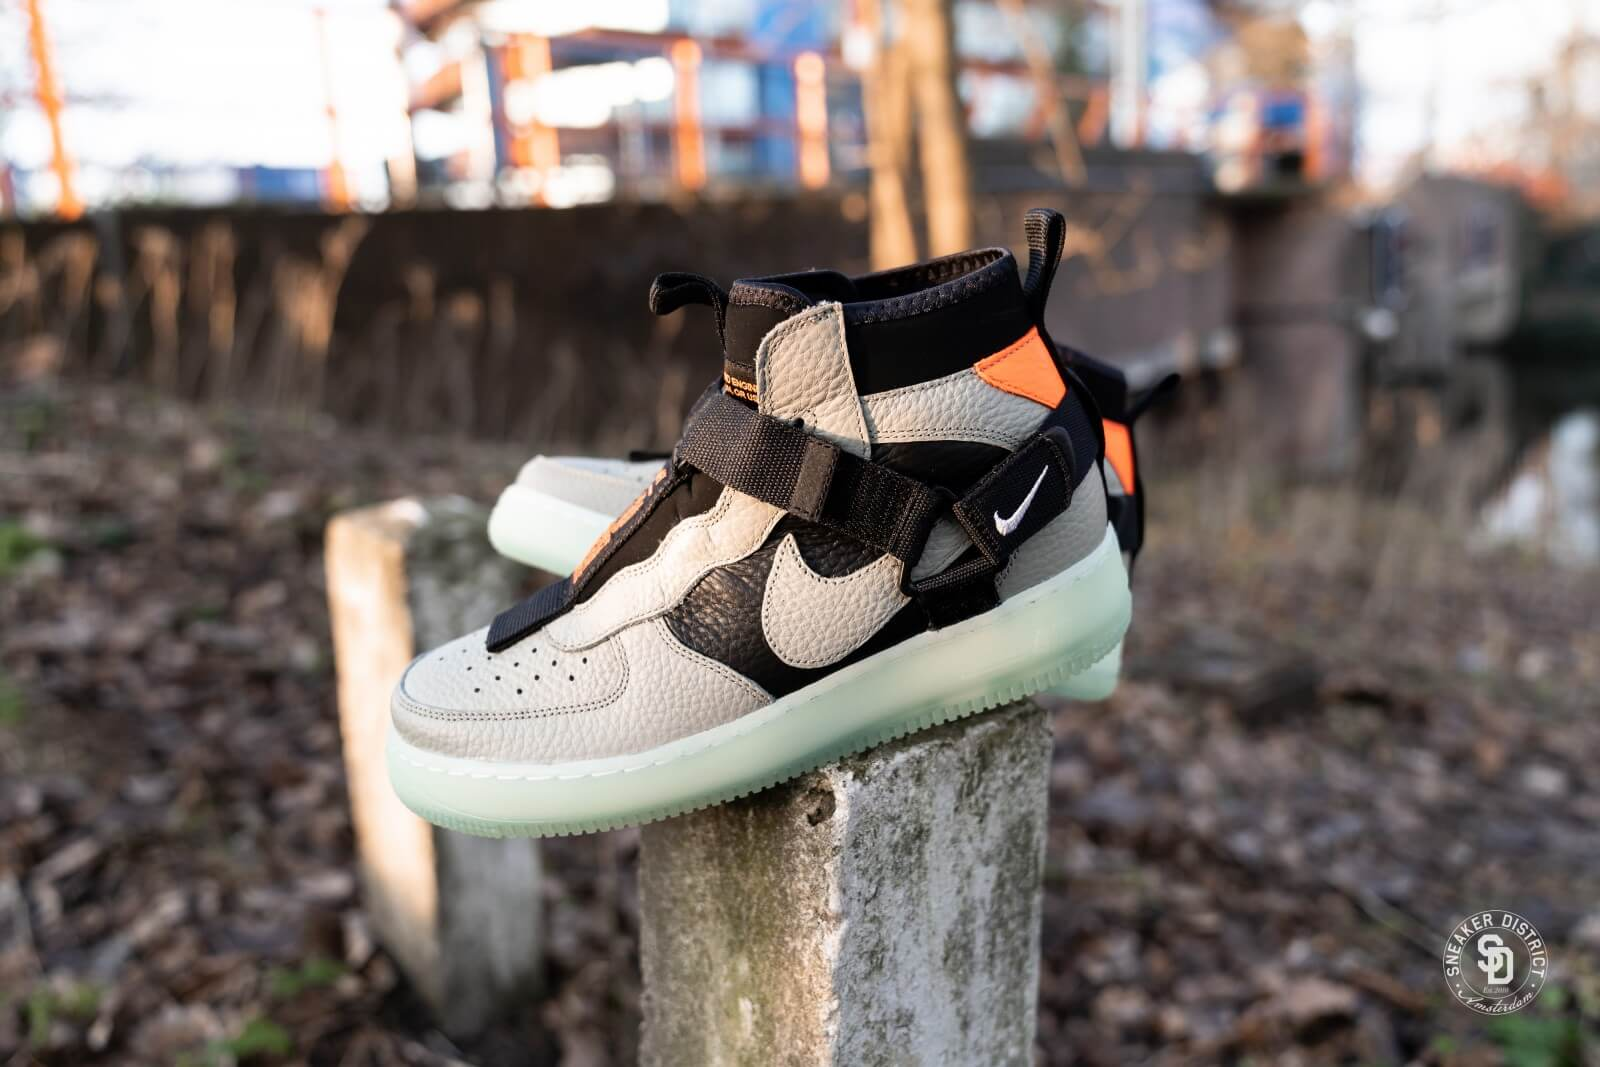 Nike Air Force 1 Utility Mid Spruce Fog/Black/Frosted Spruce - AQ9758-300